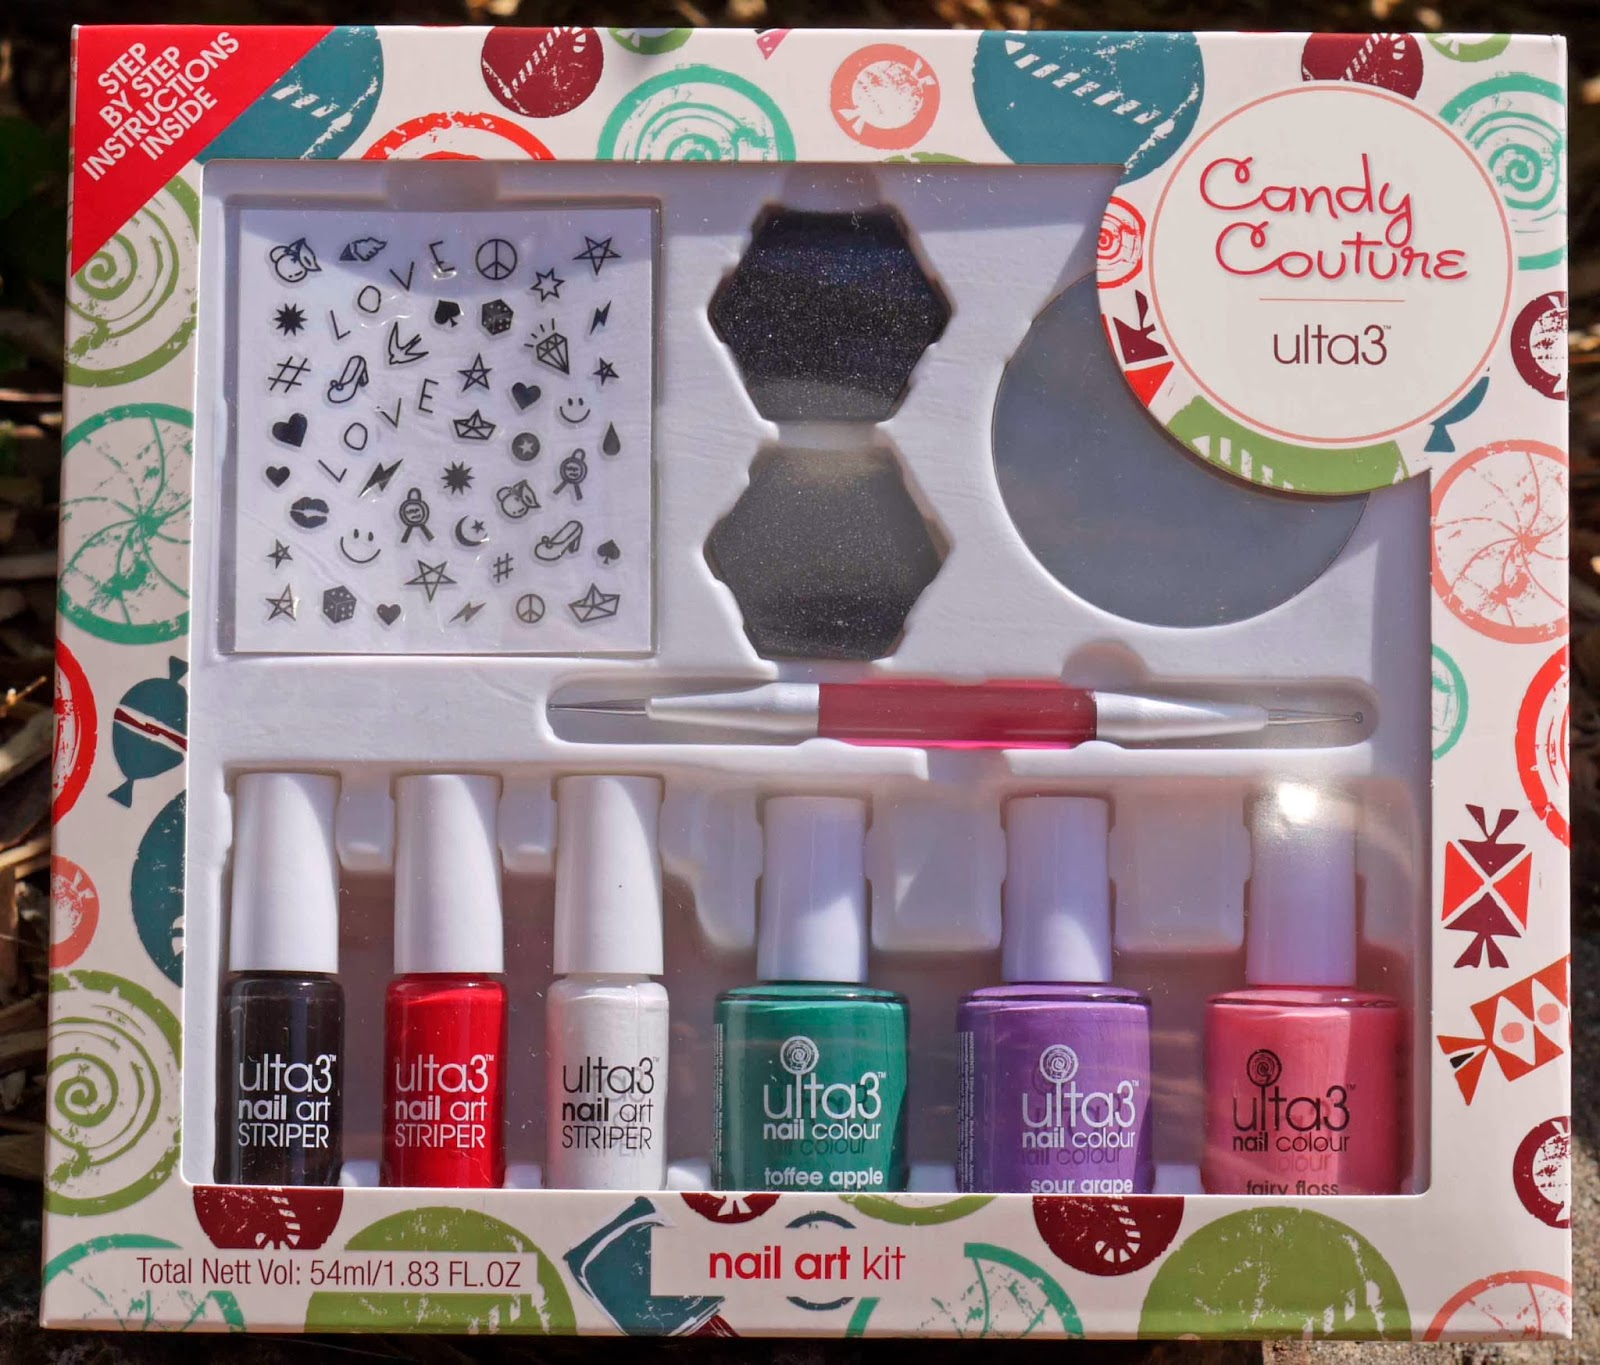 Loki\'s Lacquer: Ulta 3 Candy Couture Nail Art kit Review